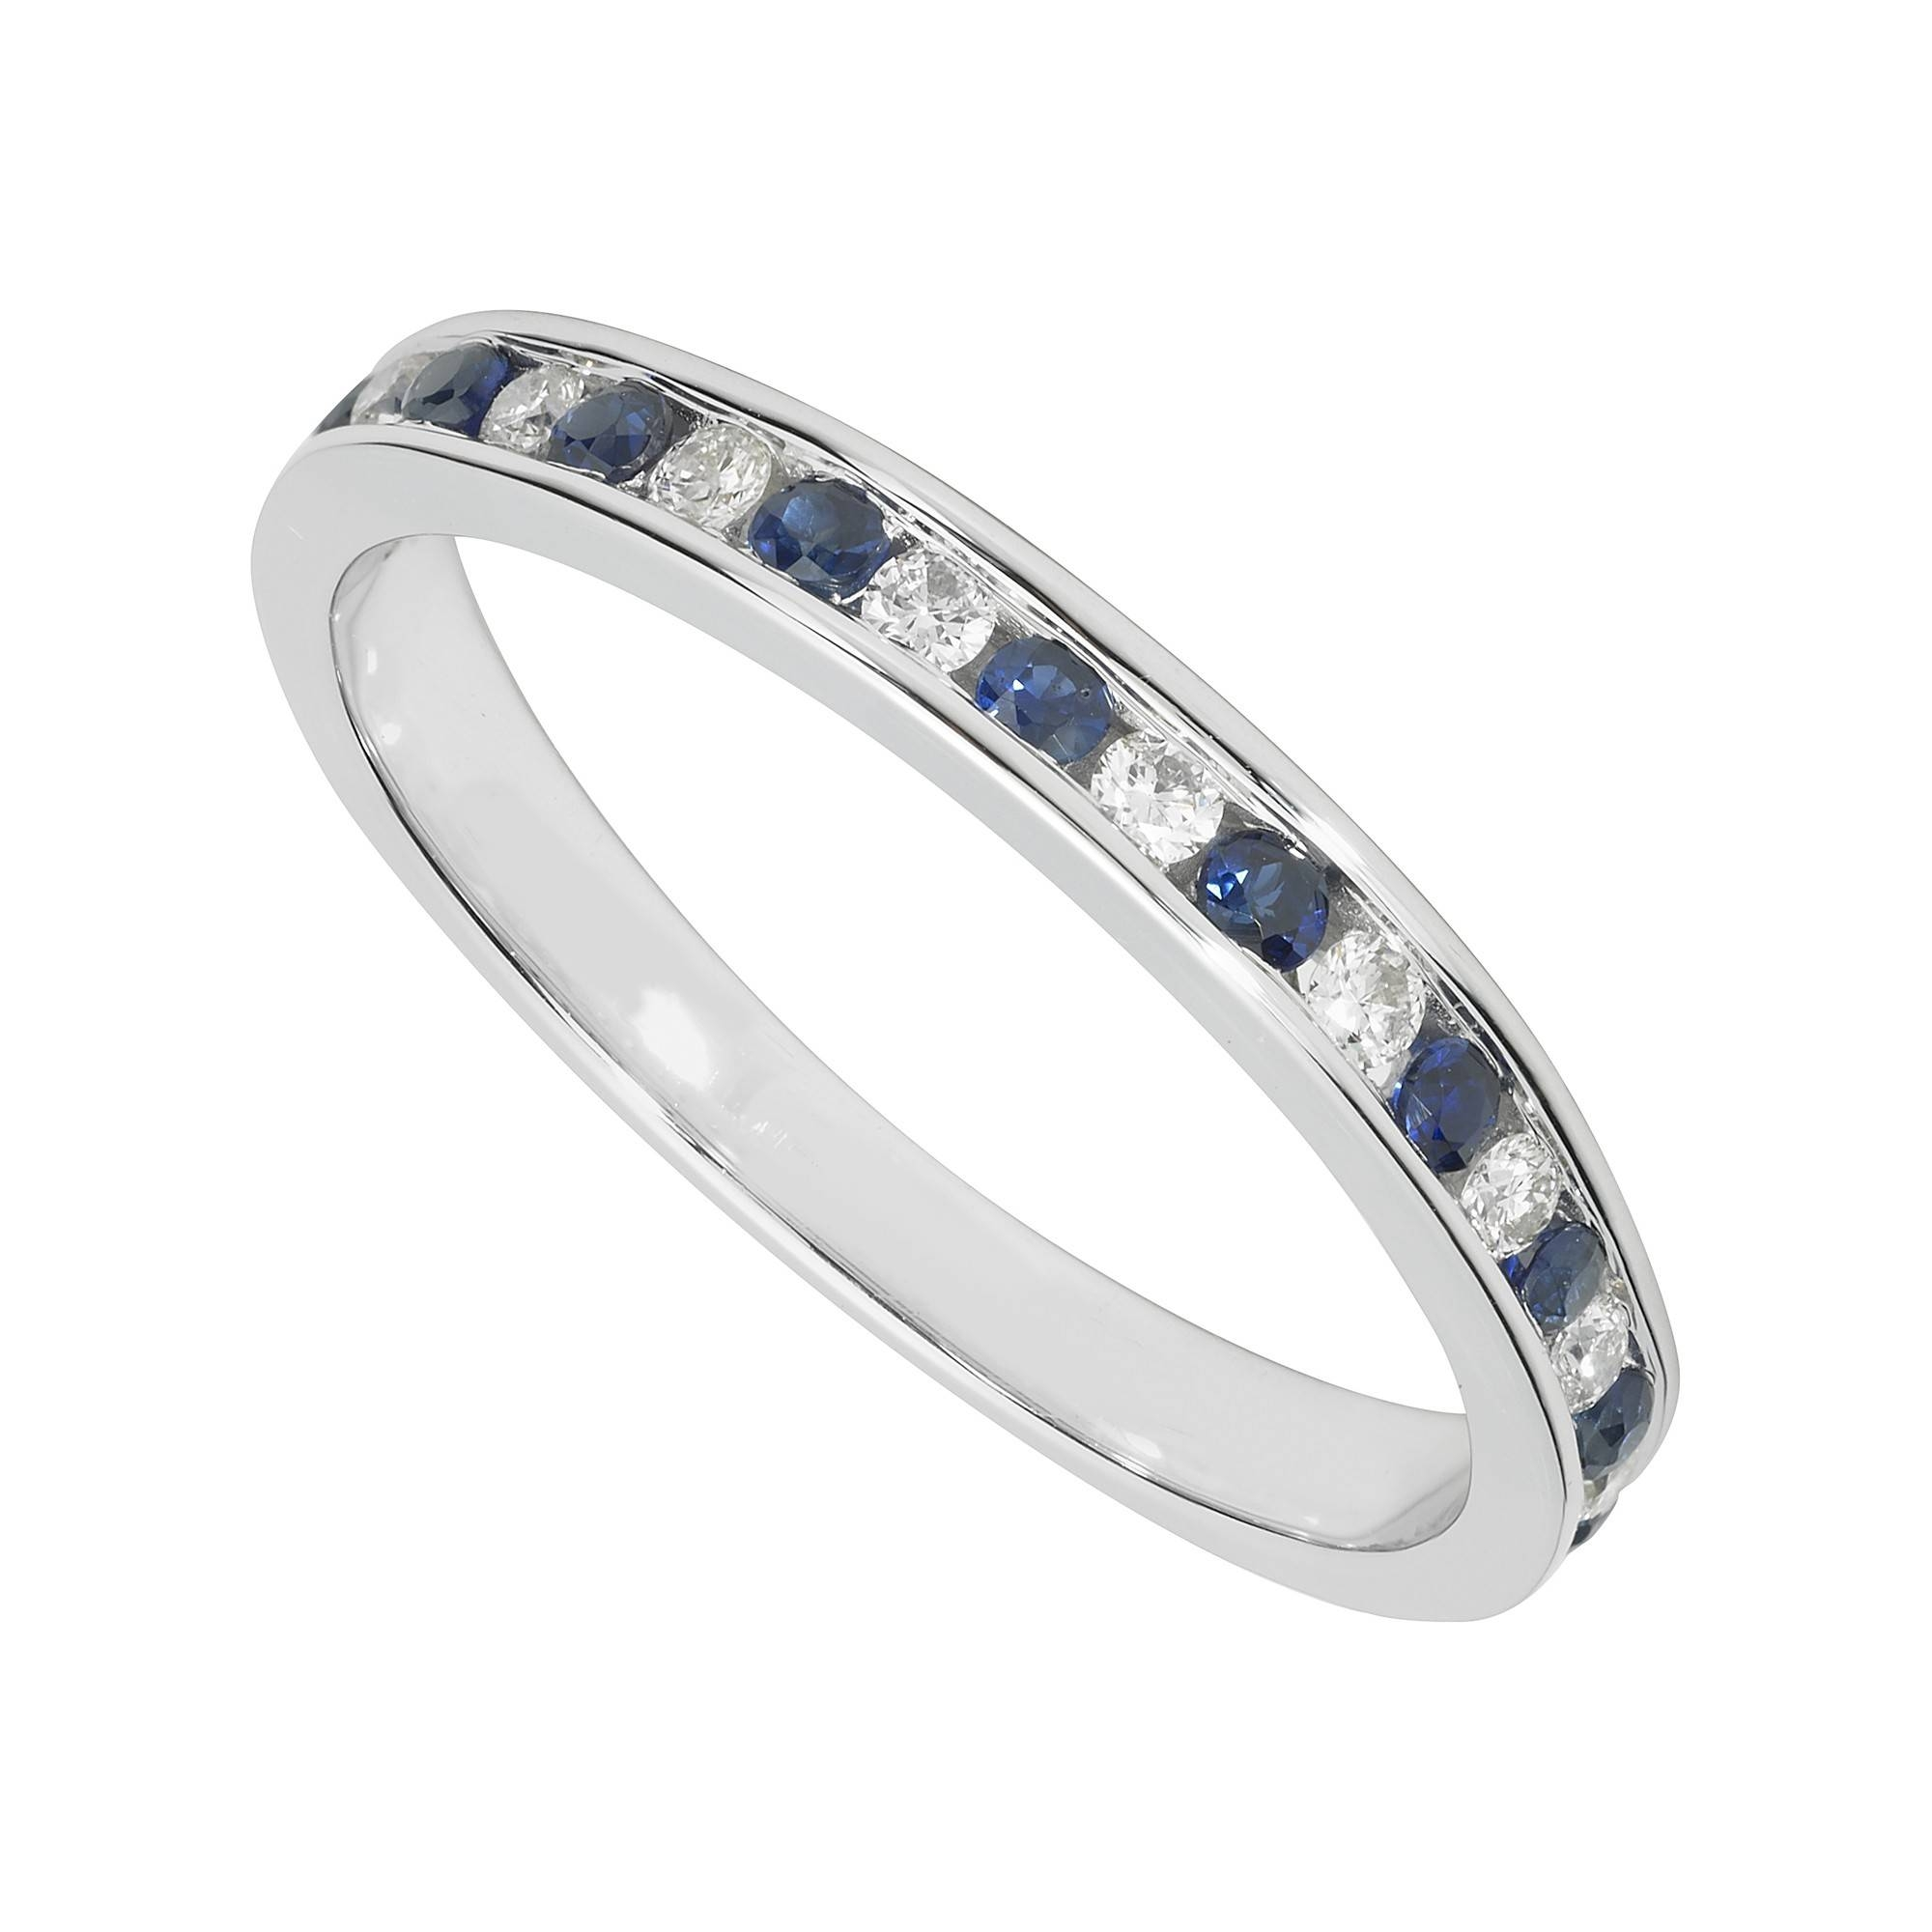 Ladies' 9Ct White Gold Diamond And Sapphire Wedding Ring Pertaining To Sapphire And Diamond Wedding Rings (View 11 of 15)